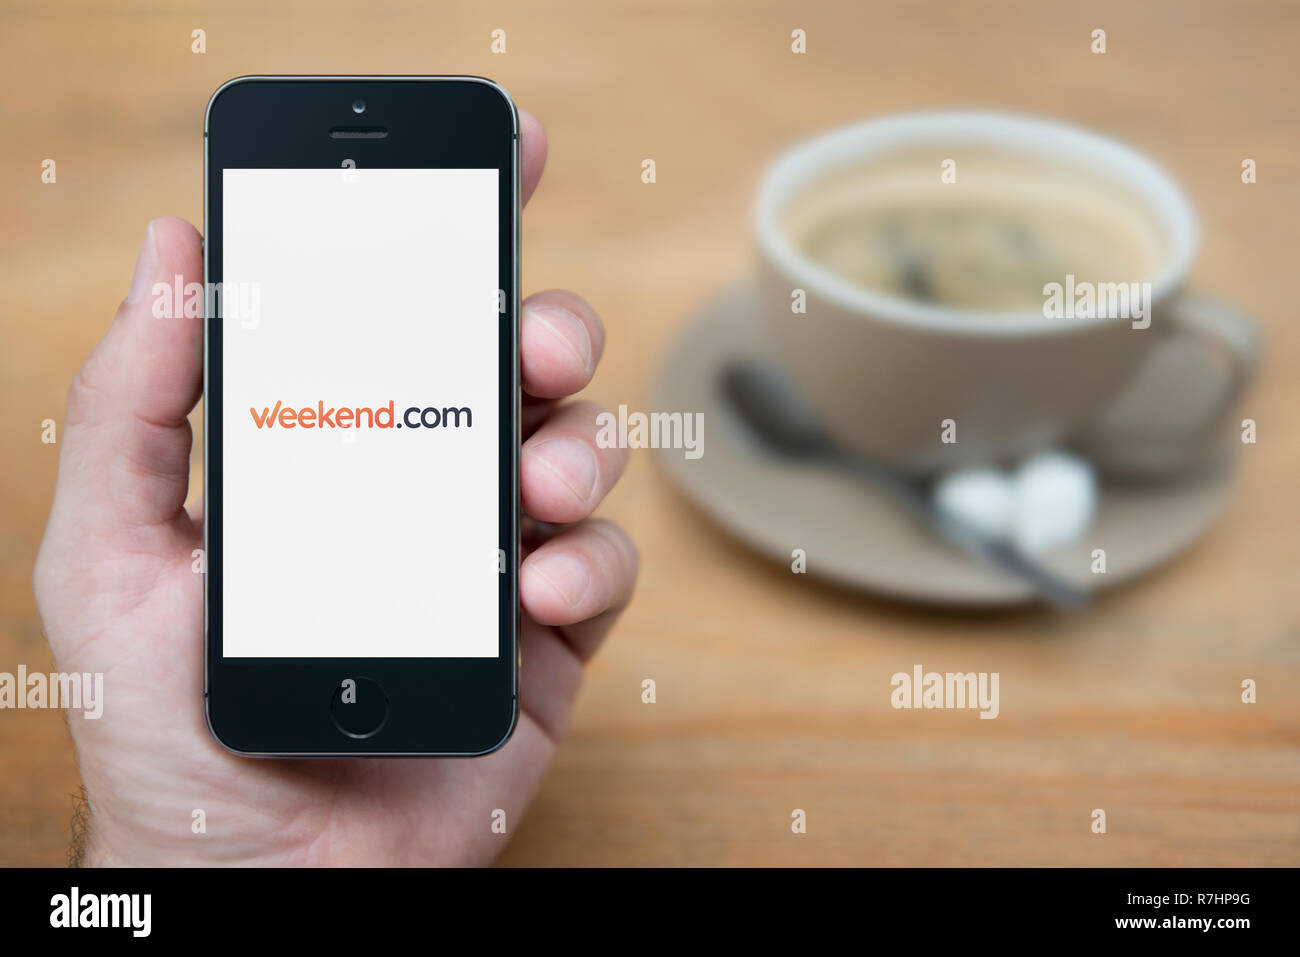 A man looks at his iPhone which displays the Weekend.com logo (Editorial use only). - Stock Image